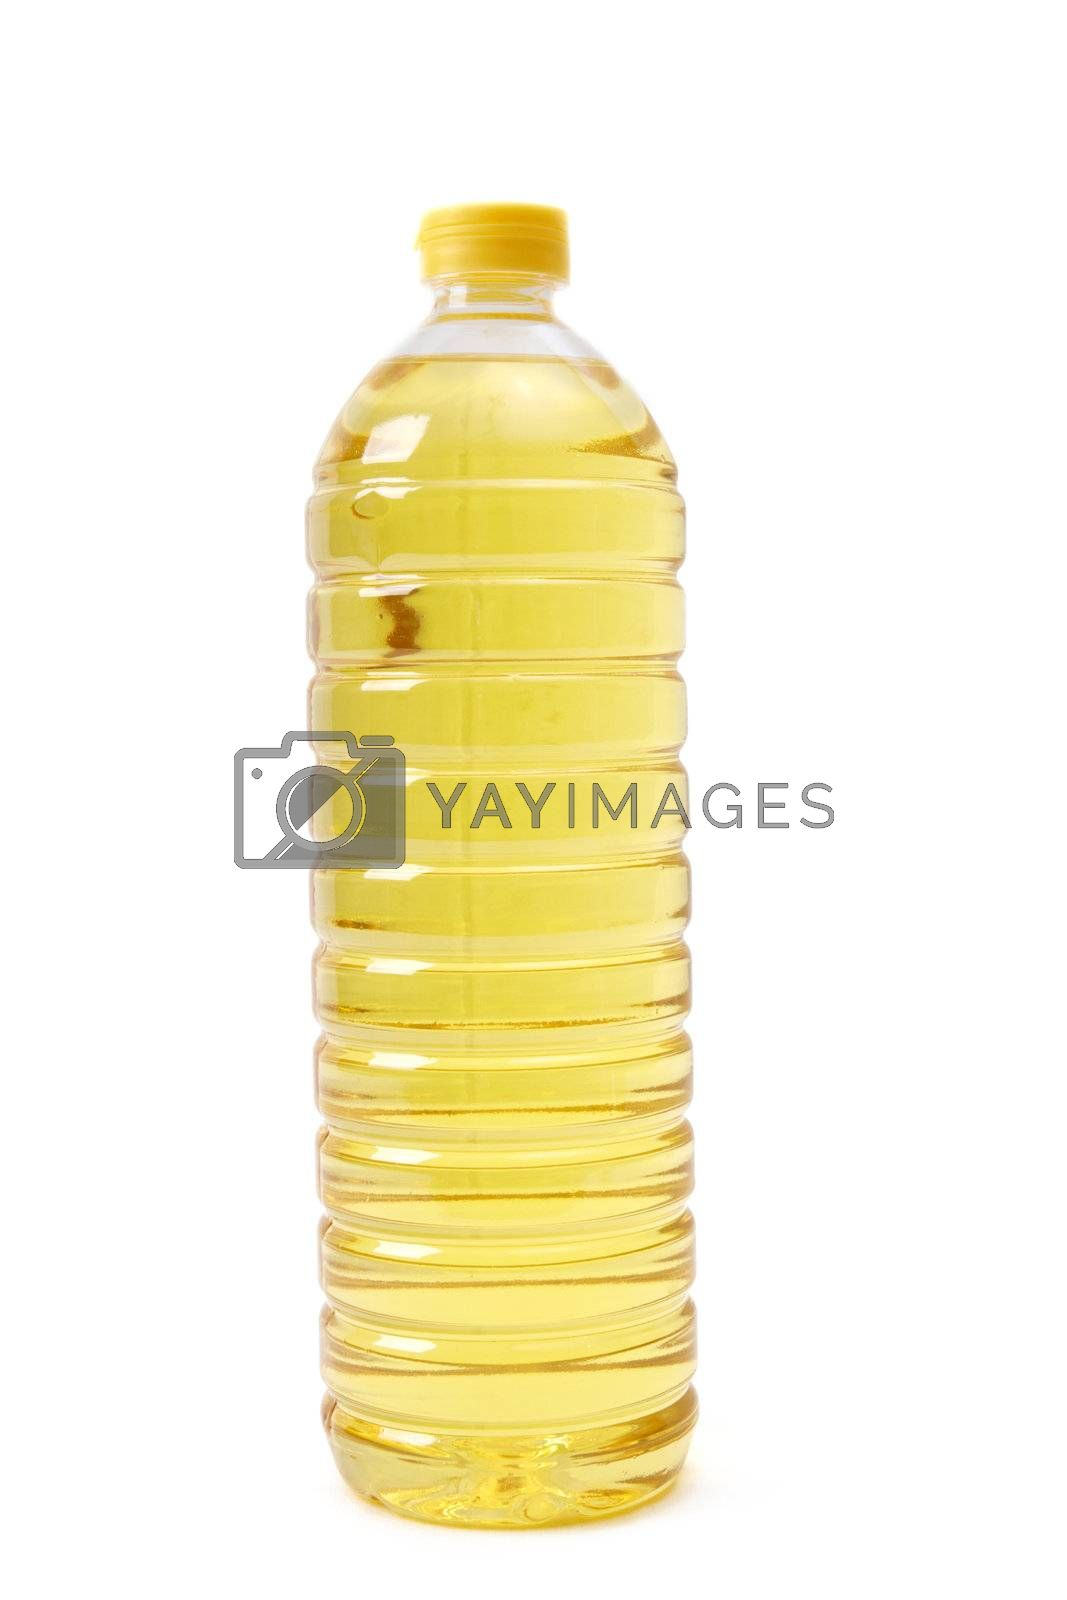 Isolated oil bottle on white background